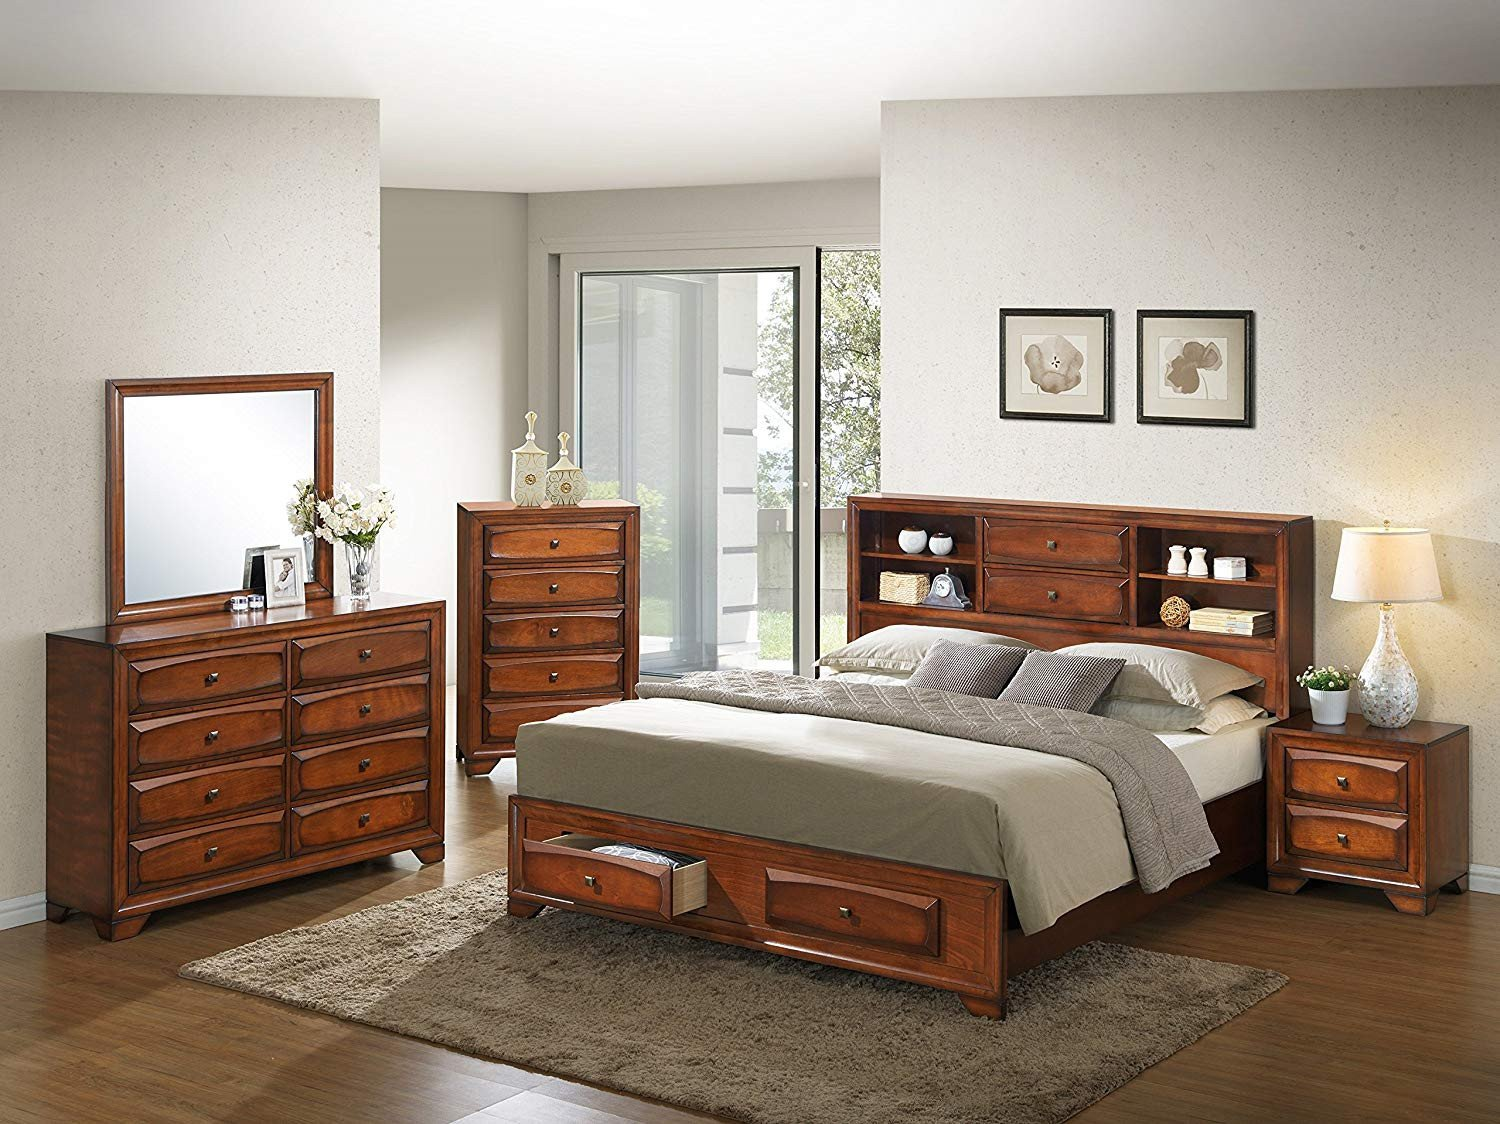 Queen Bedroom Set with Storage Drawers New Roundhill Furniture asger Wood Room Set Queen Storage Bed Dresser Mirror Night Stand Chest